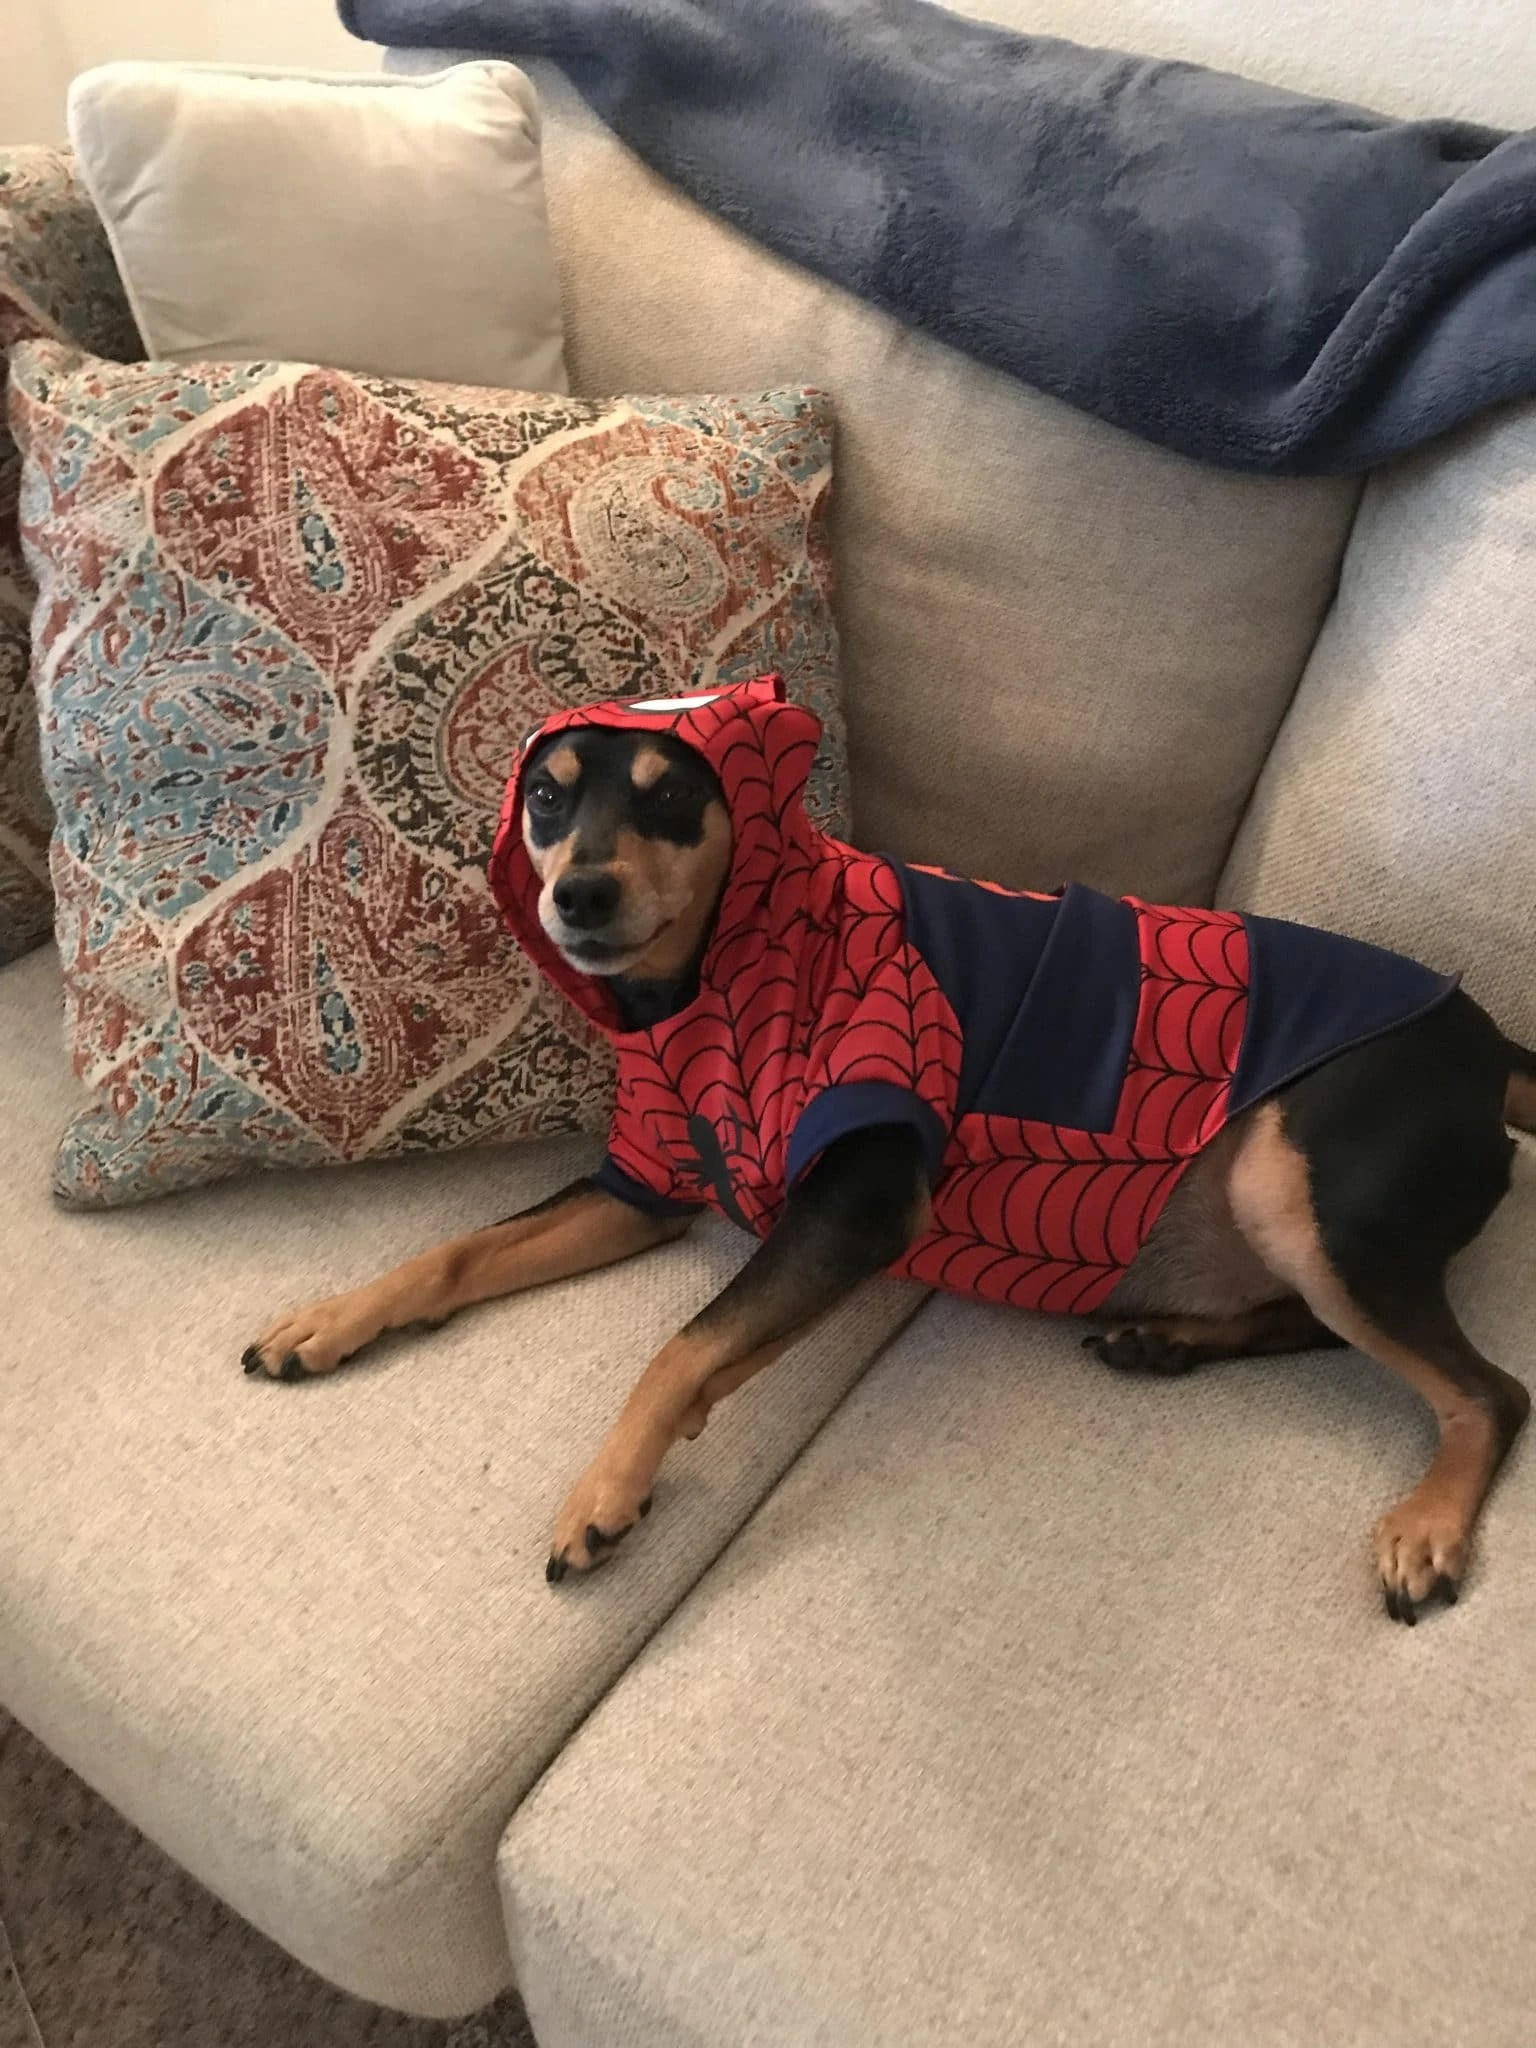 Gambit, our miniature pinscher in a Spiderman costume